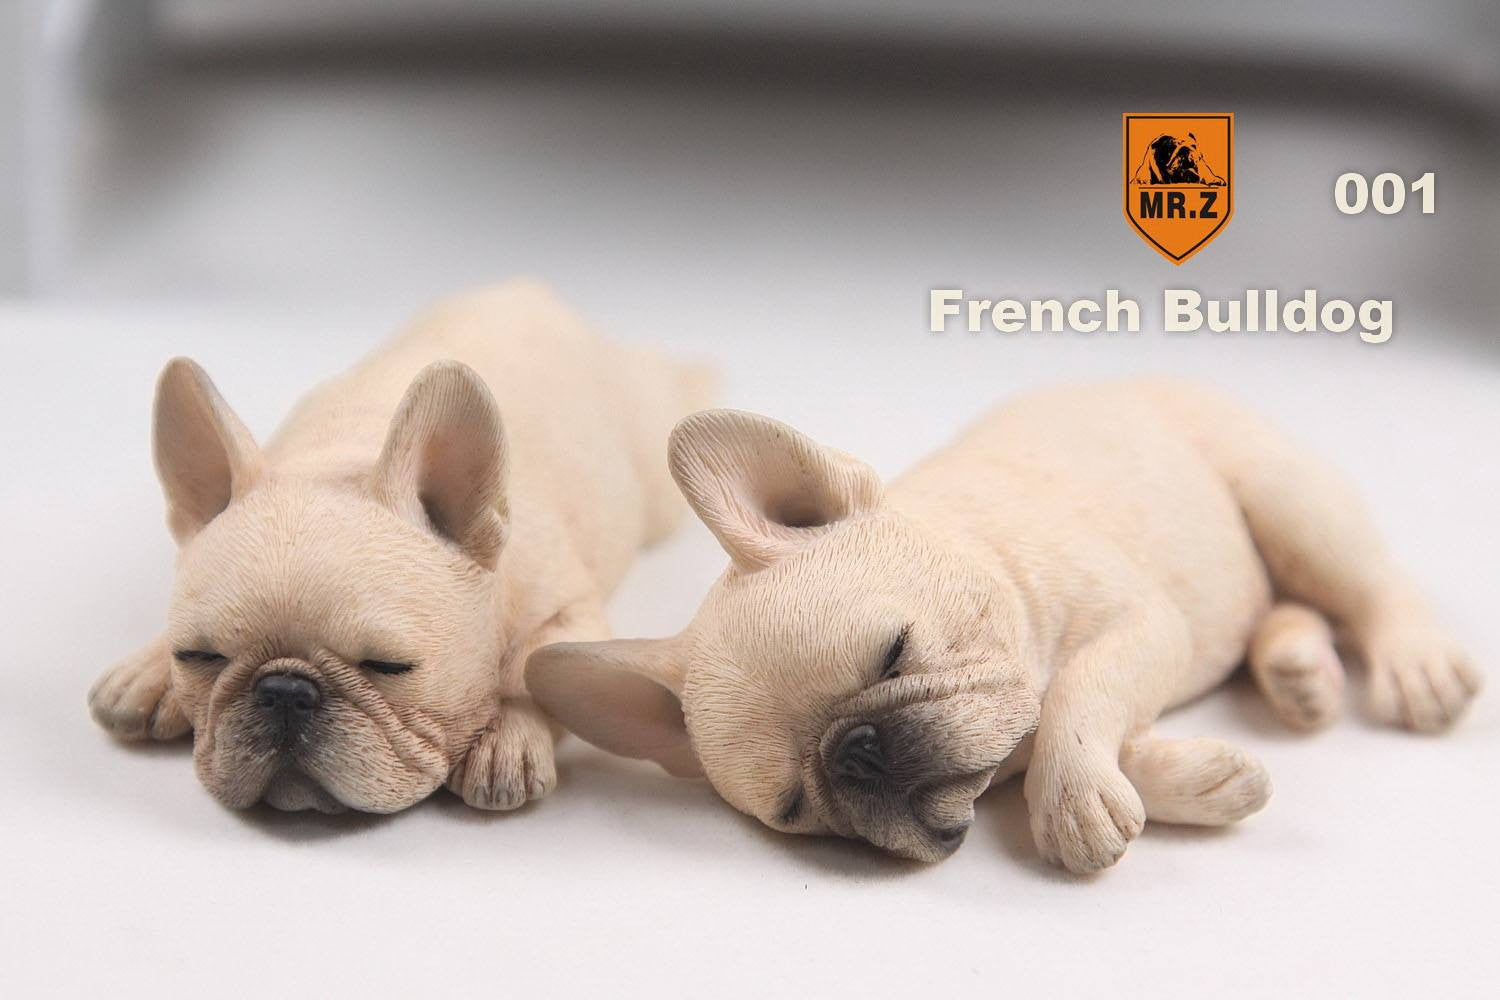 MR.Z - Real Animal Series No.9 - 1/6th Scale French Bulldog (Sleep Mode) 001-005 - Marvelous Toys - 4